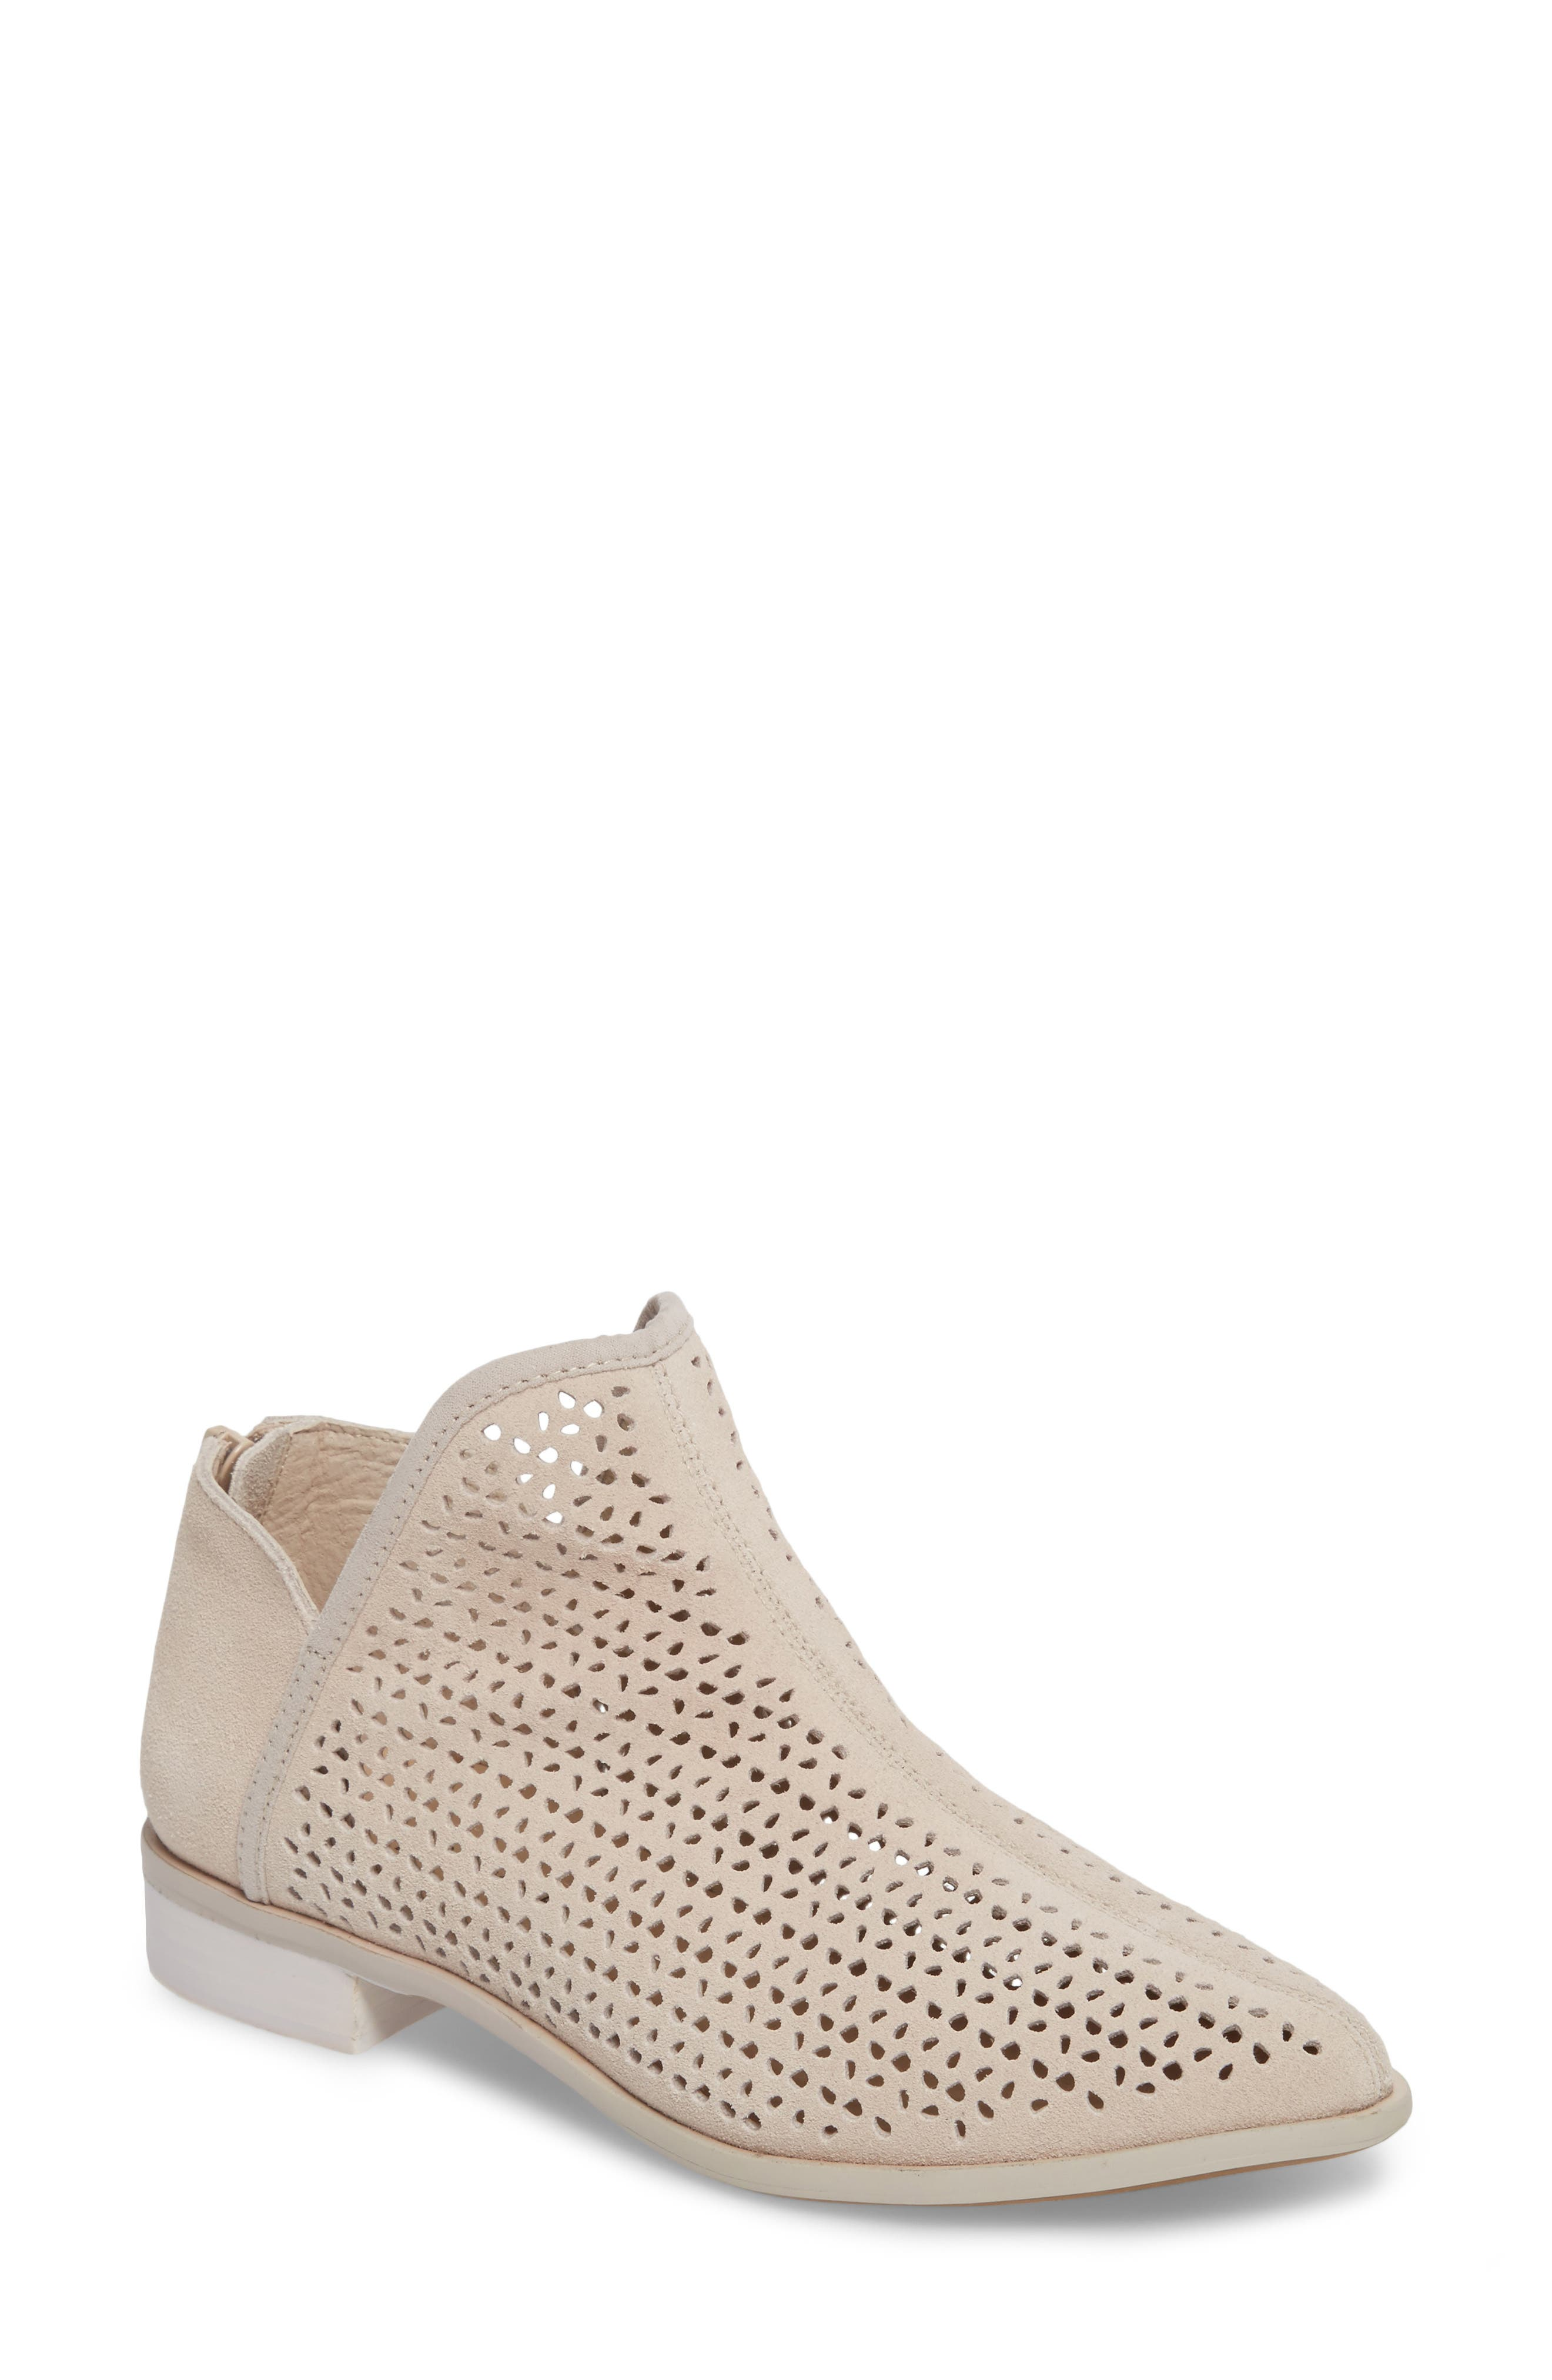 Alley Perforated Bootie,                             Main thumbnail 1, color,                             Wheat